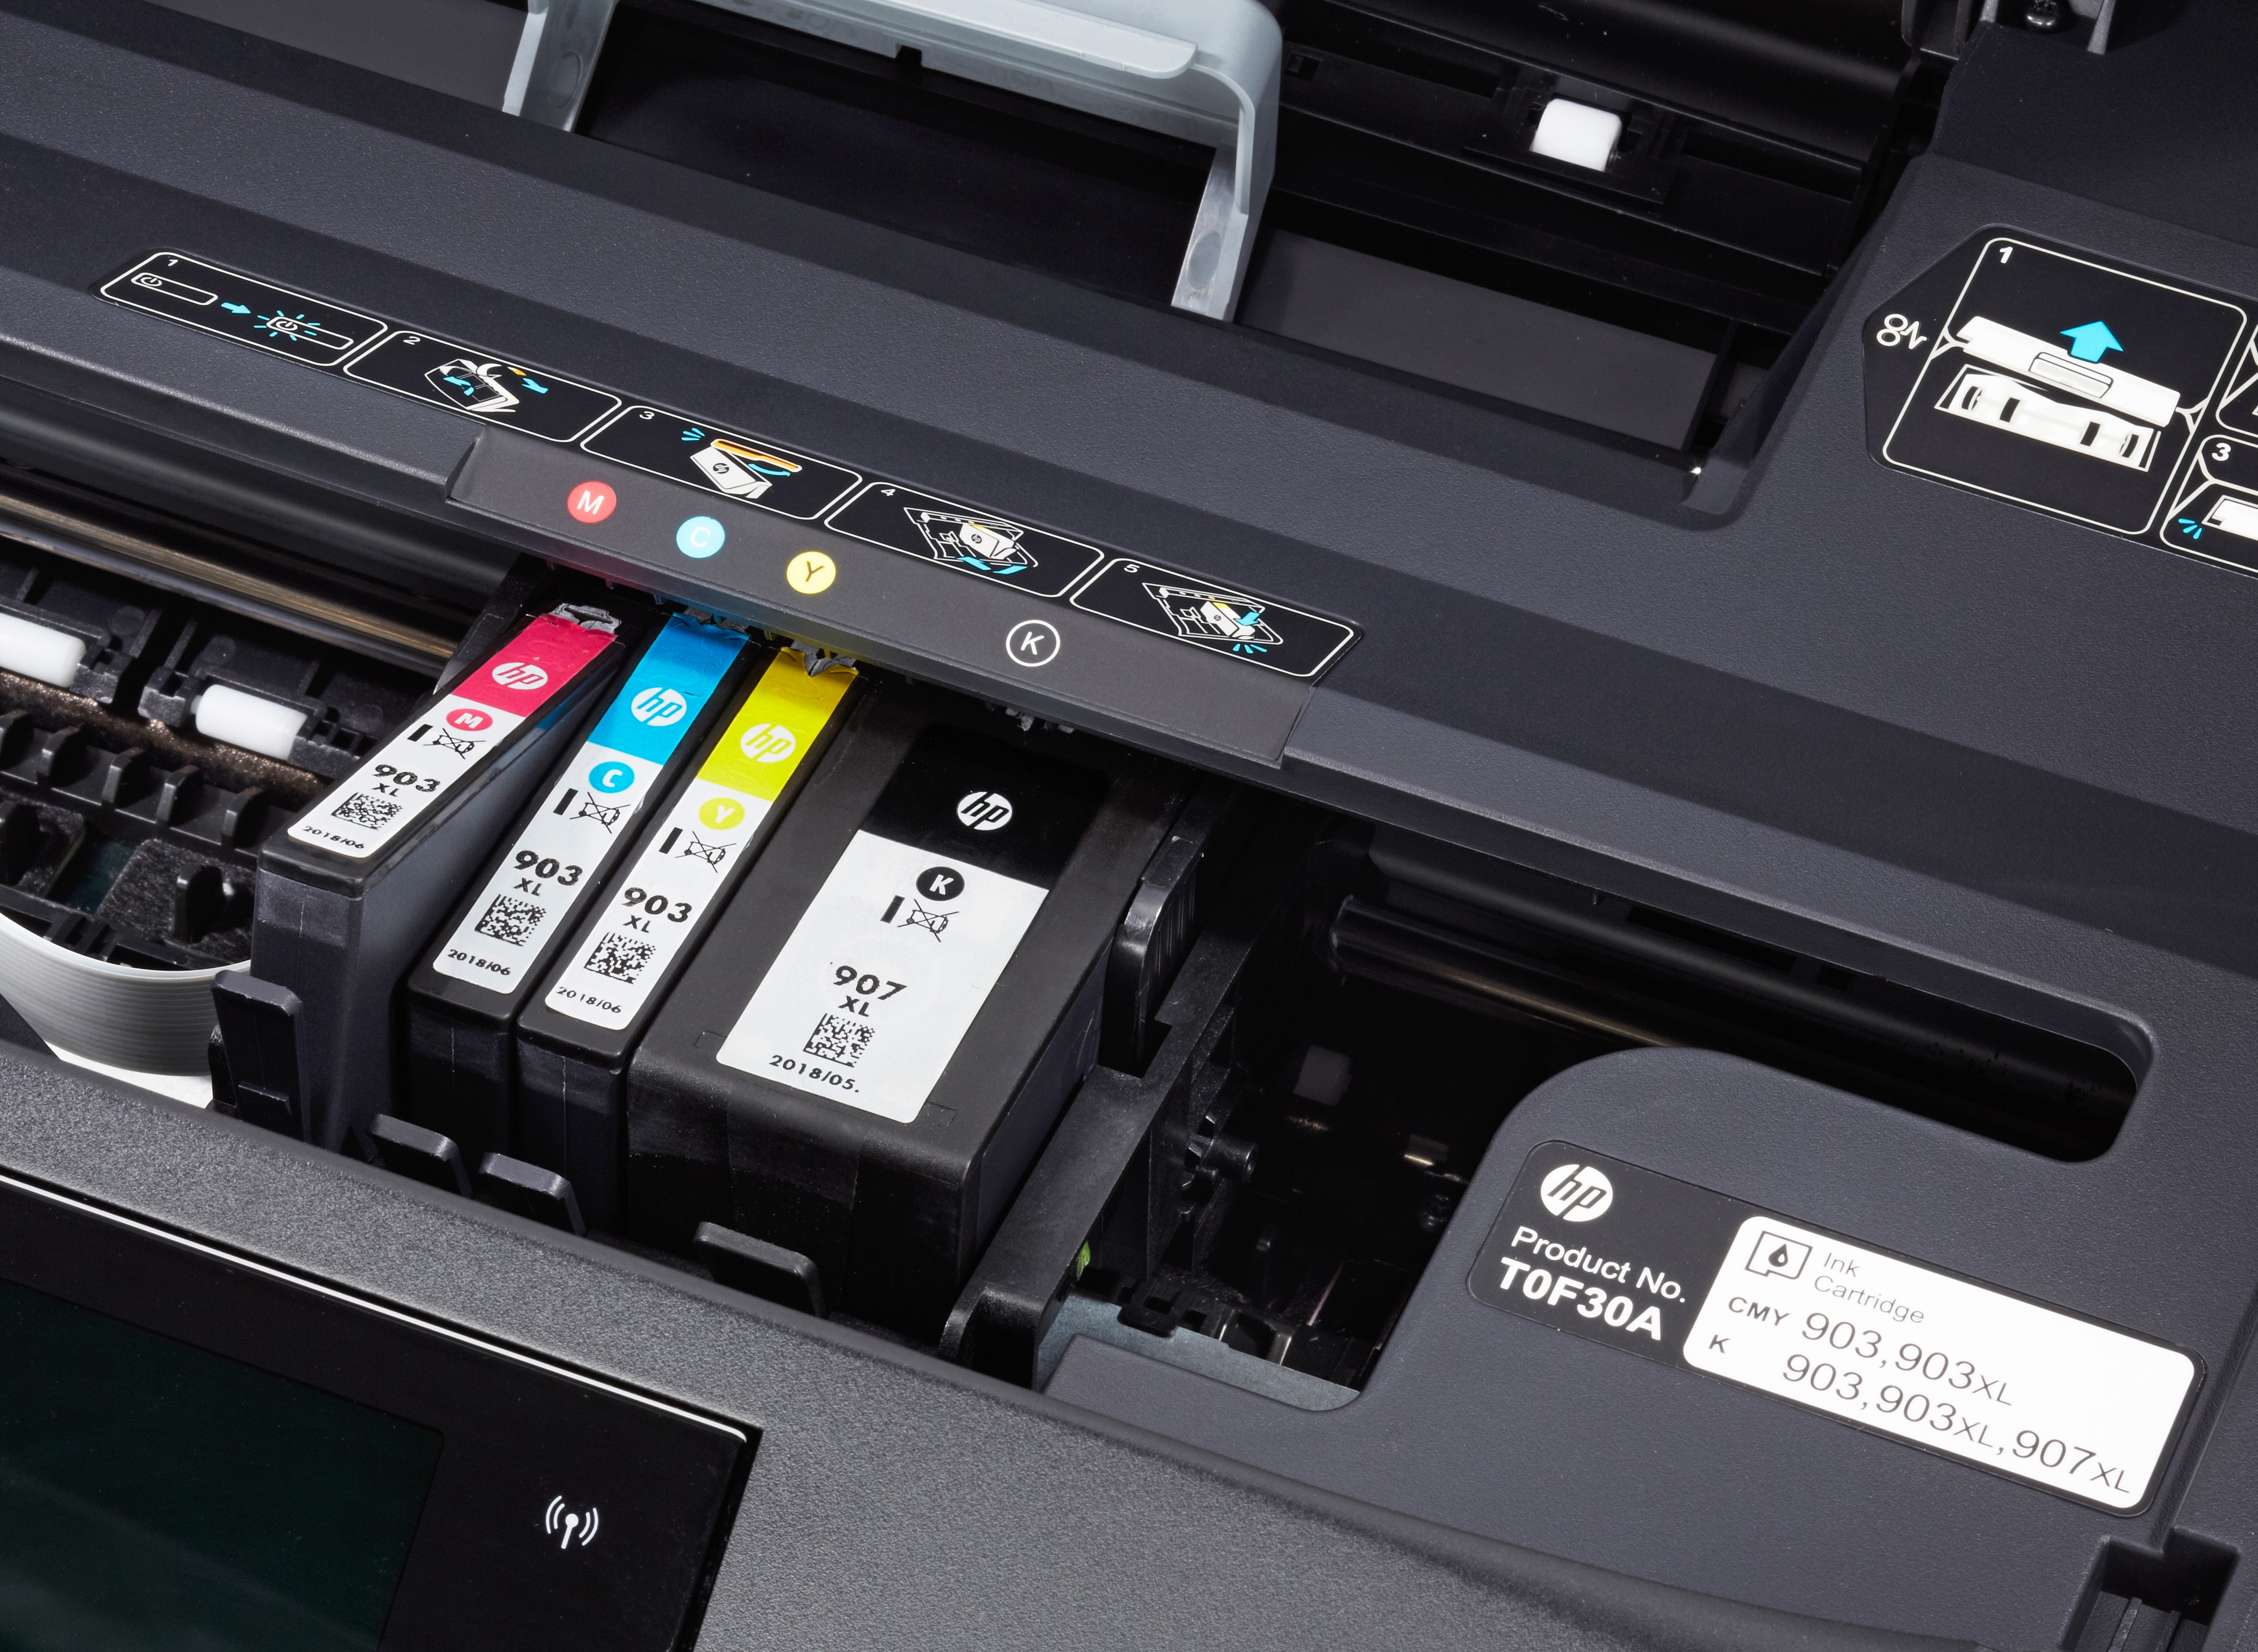 HP OFFICEJET 6960 DRIVERS FOR MAC DOWNLOAD